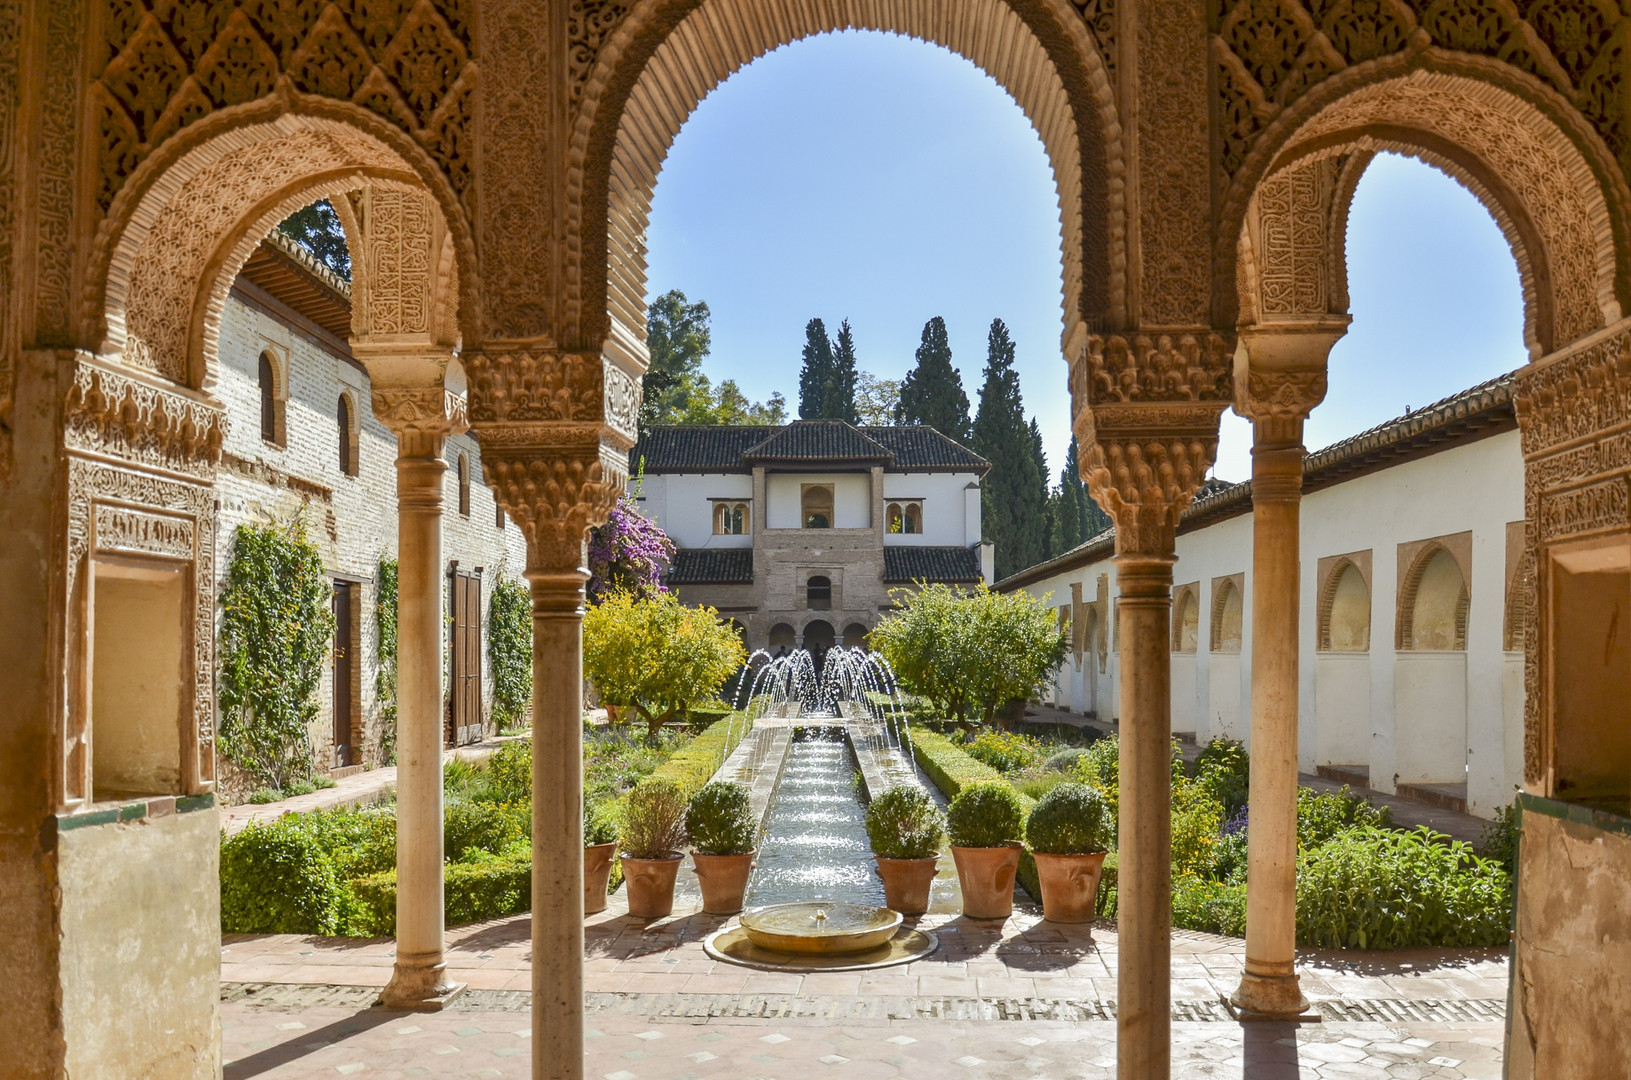 Discover Spanish culture and history